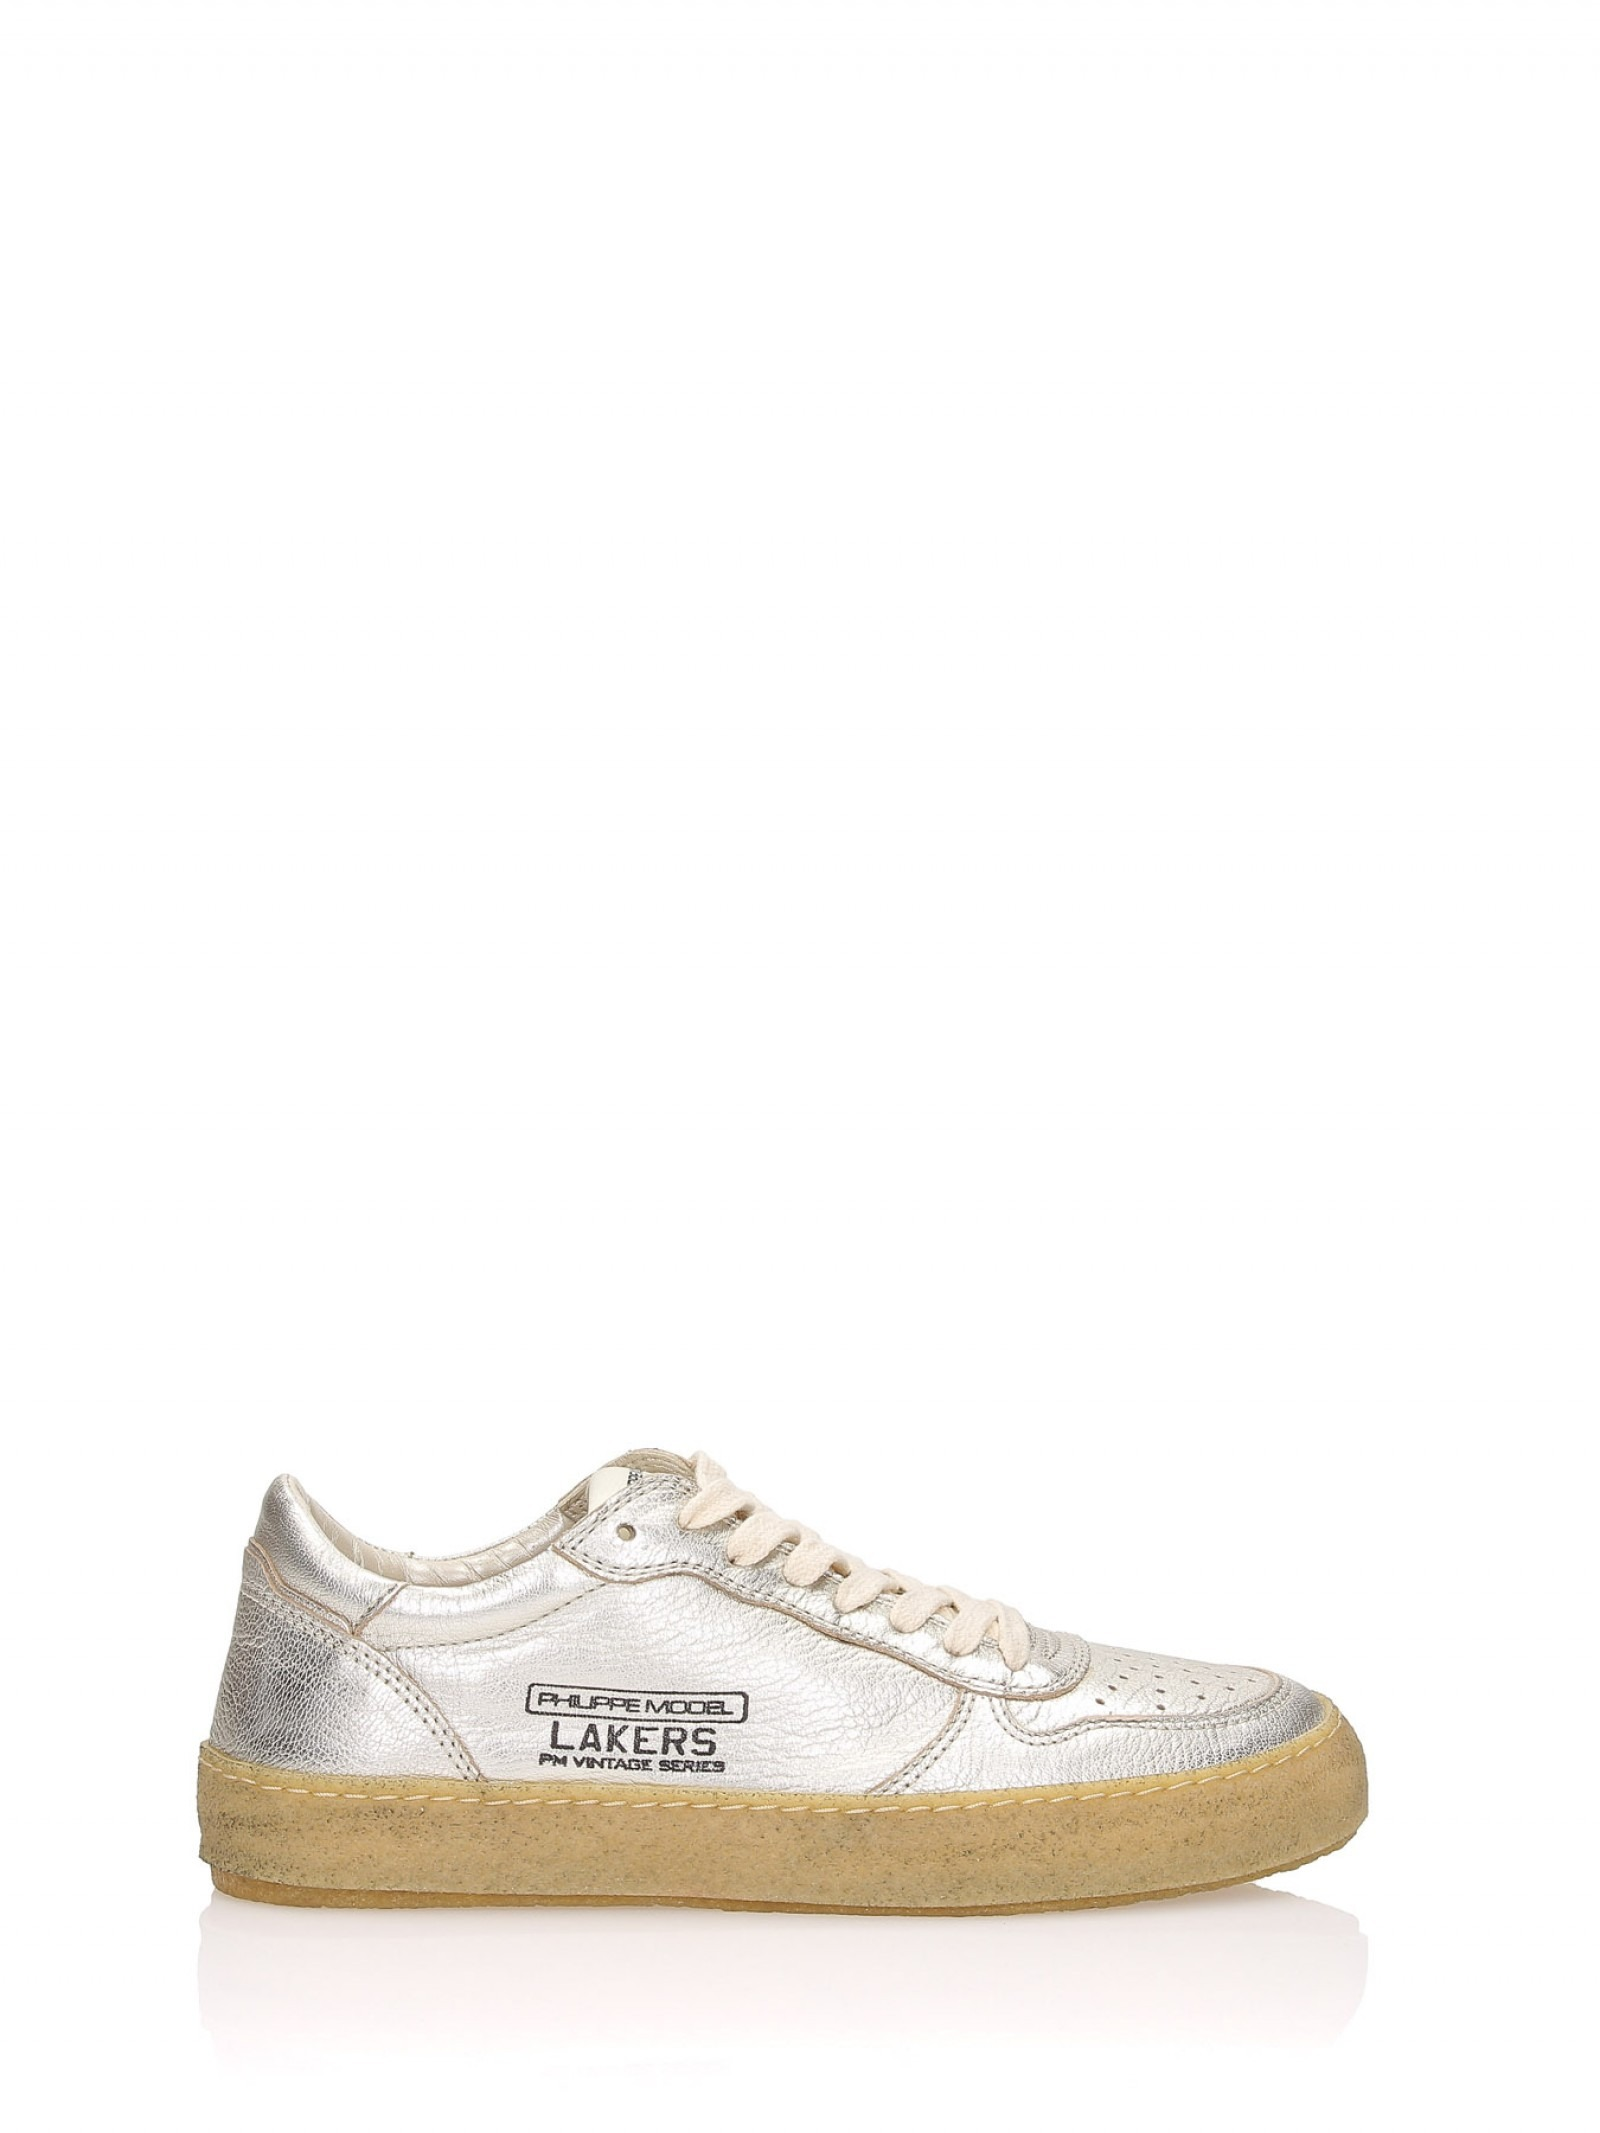 LVLD-LAKERS-VINTAGE-MM02 - Philippe Model - I8518